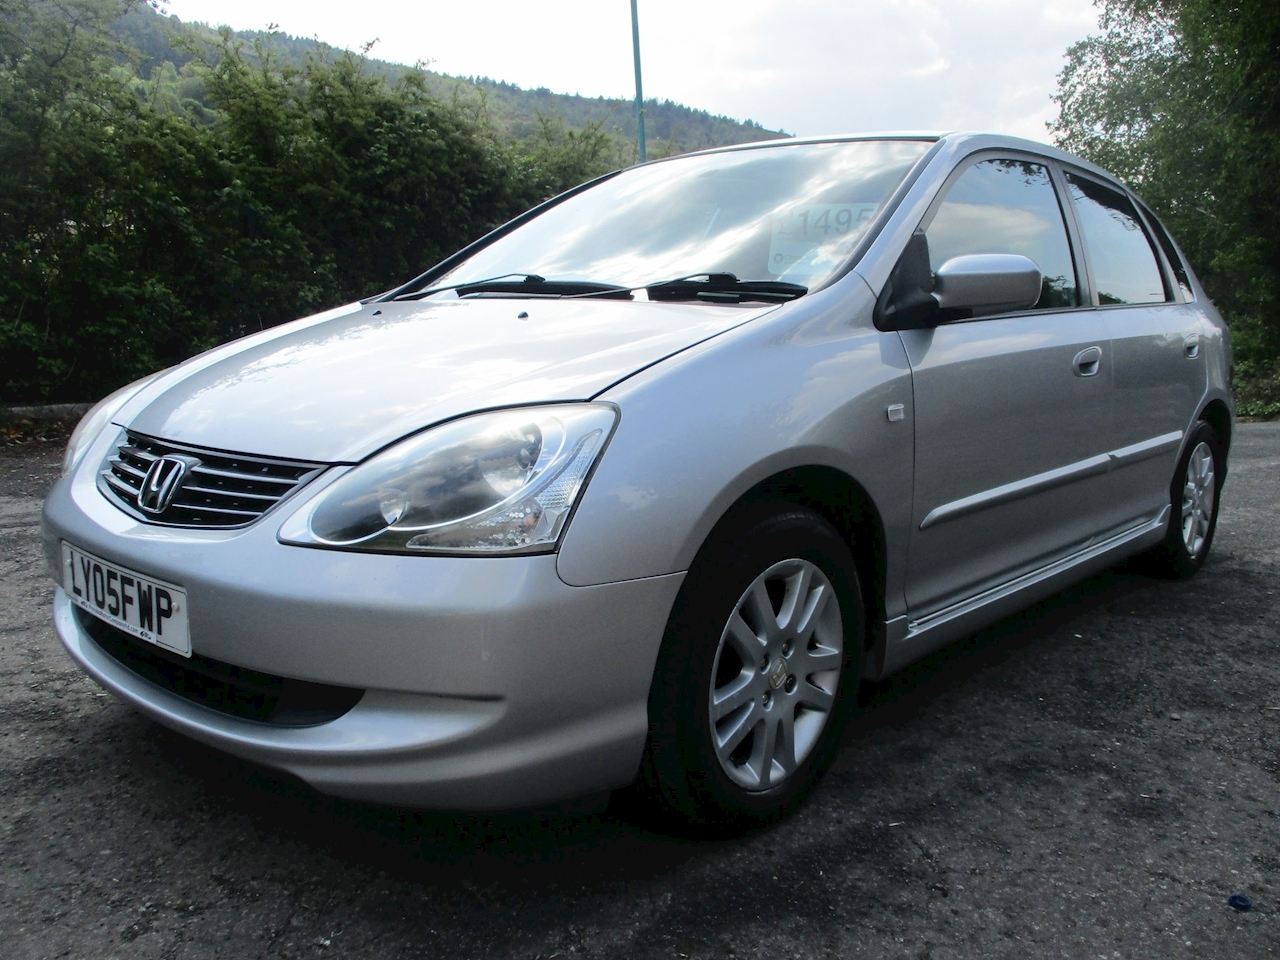 Civic Ctdi Se Hatchback 1.7 Manual Diesel